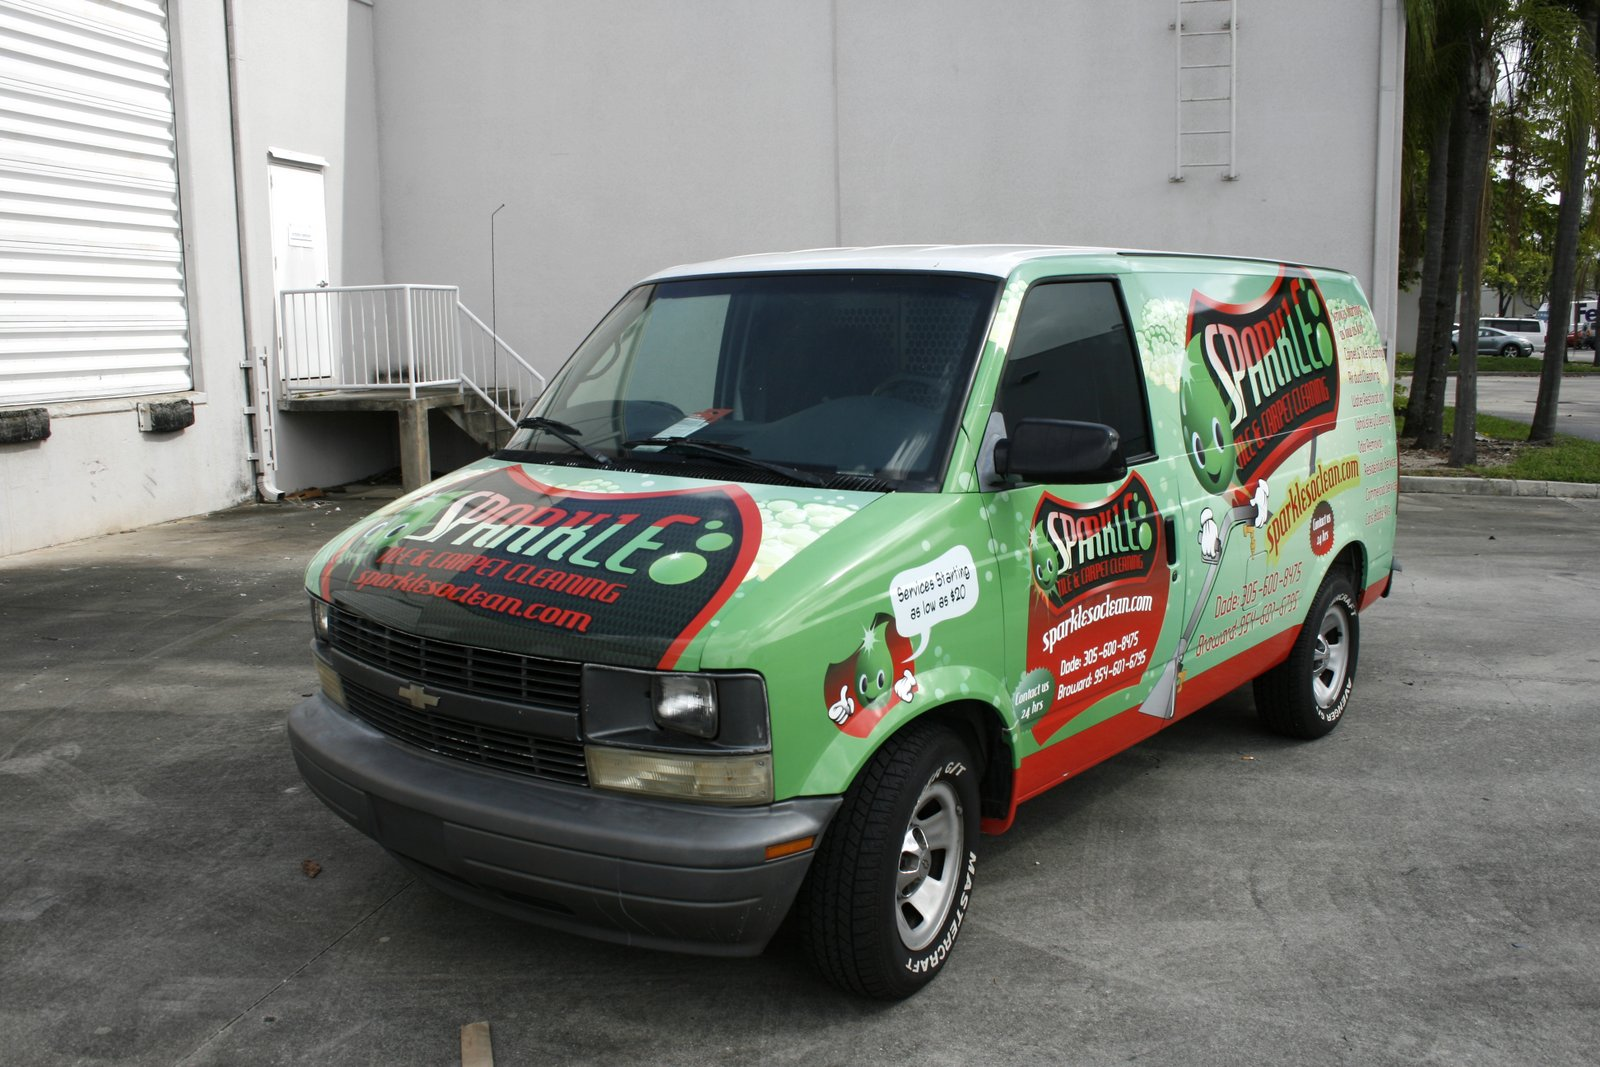 medium resolution of fort lauderdale fl chevy astro van car wrap for carpet cleaing company sparkle so clean car wrap solutions